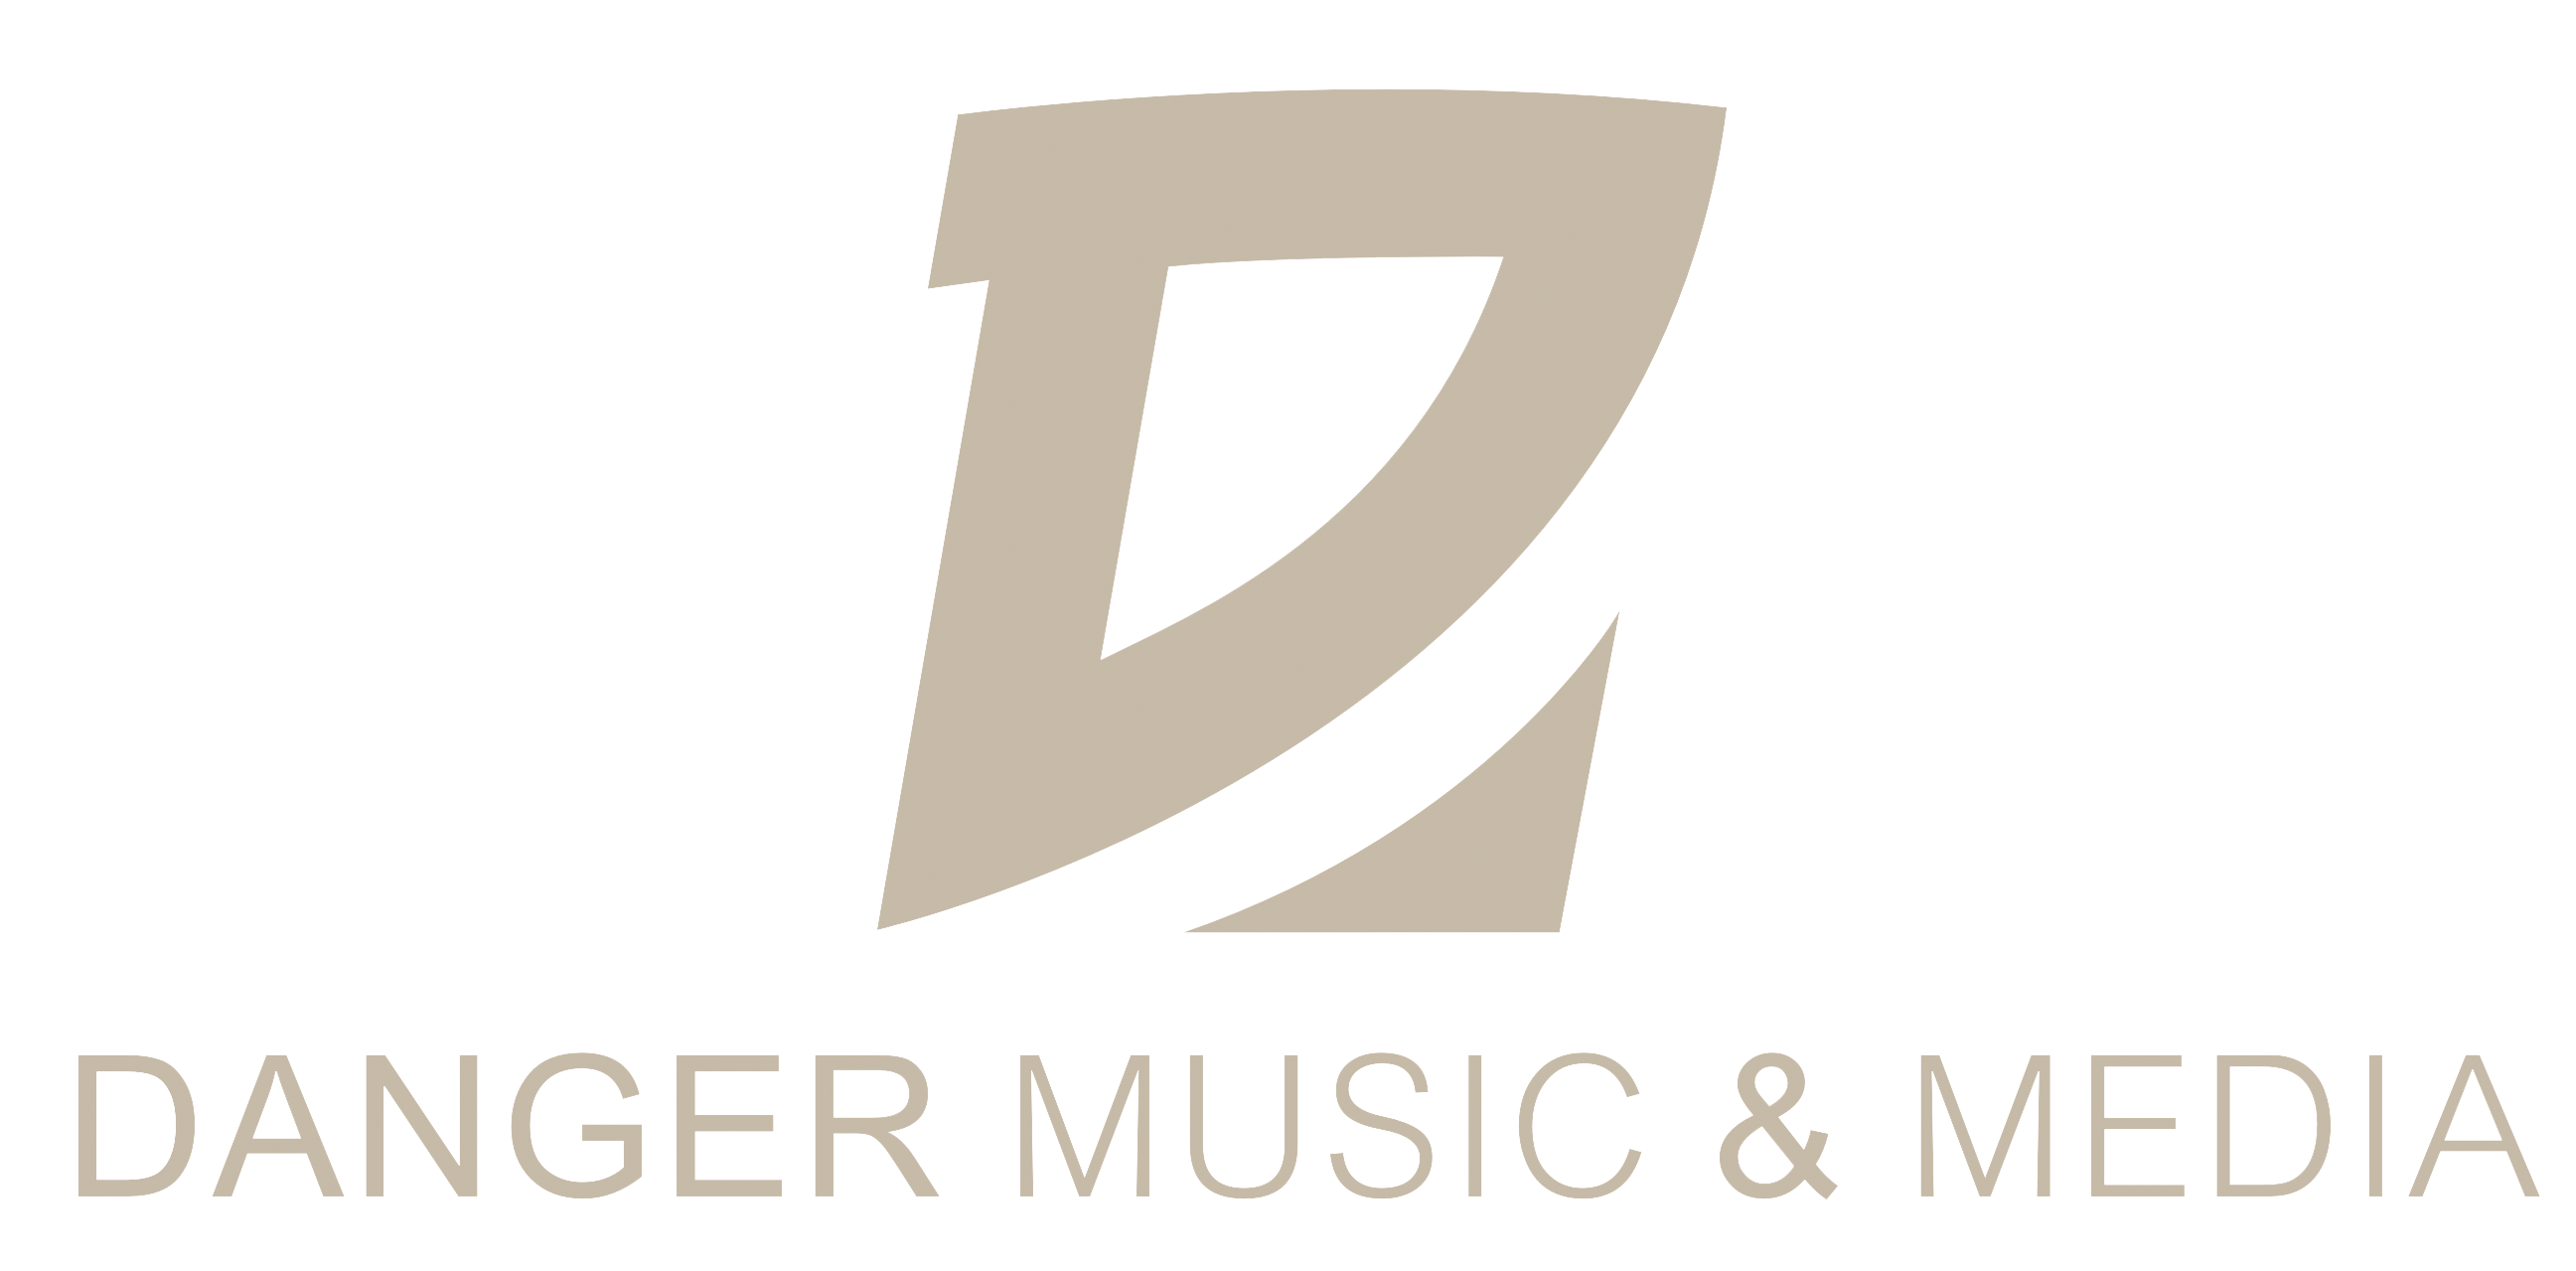 Danger Music Media